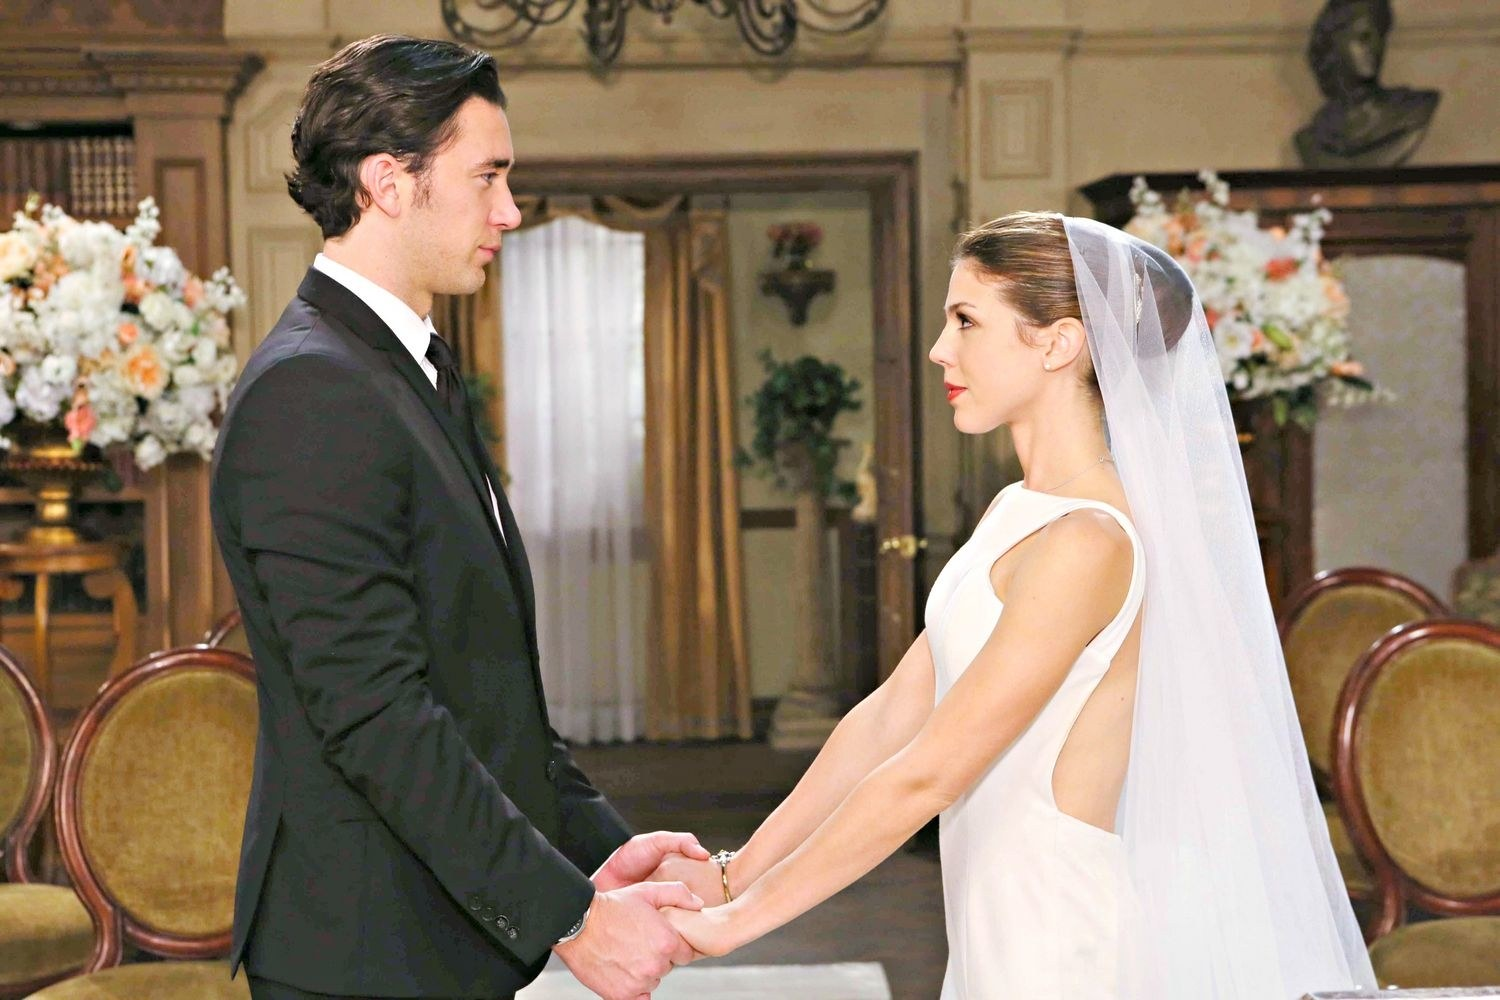 days of our lives weddings 2010present